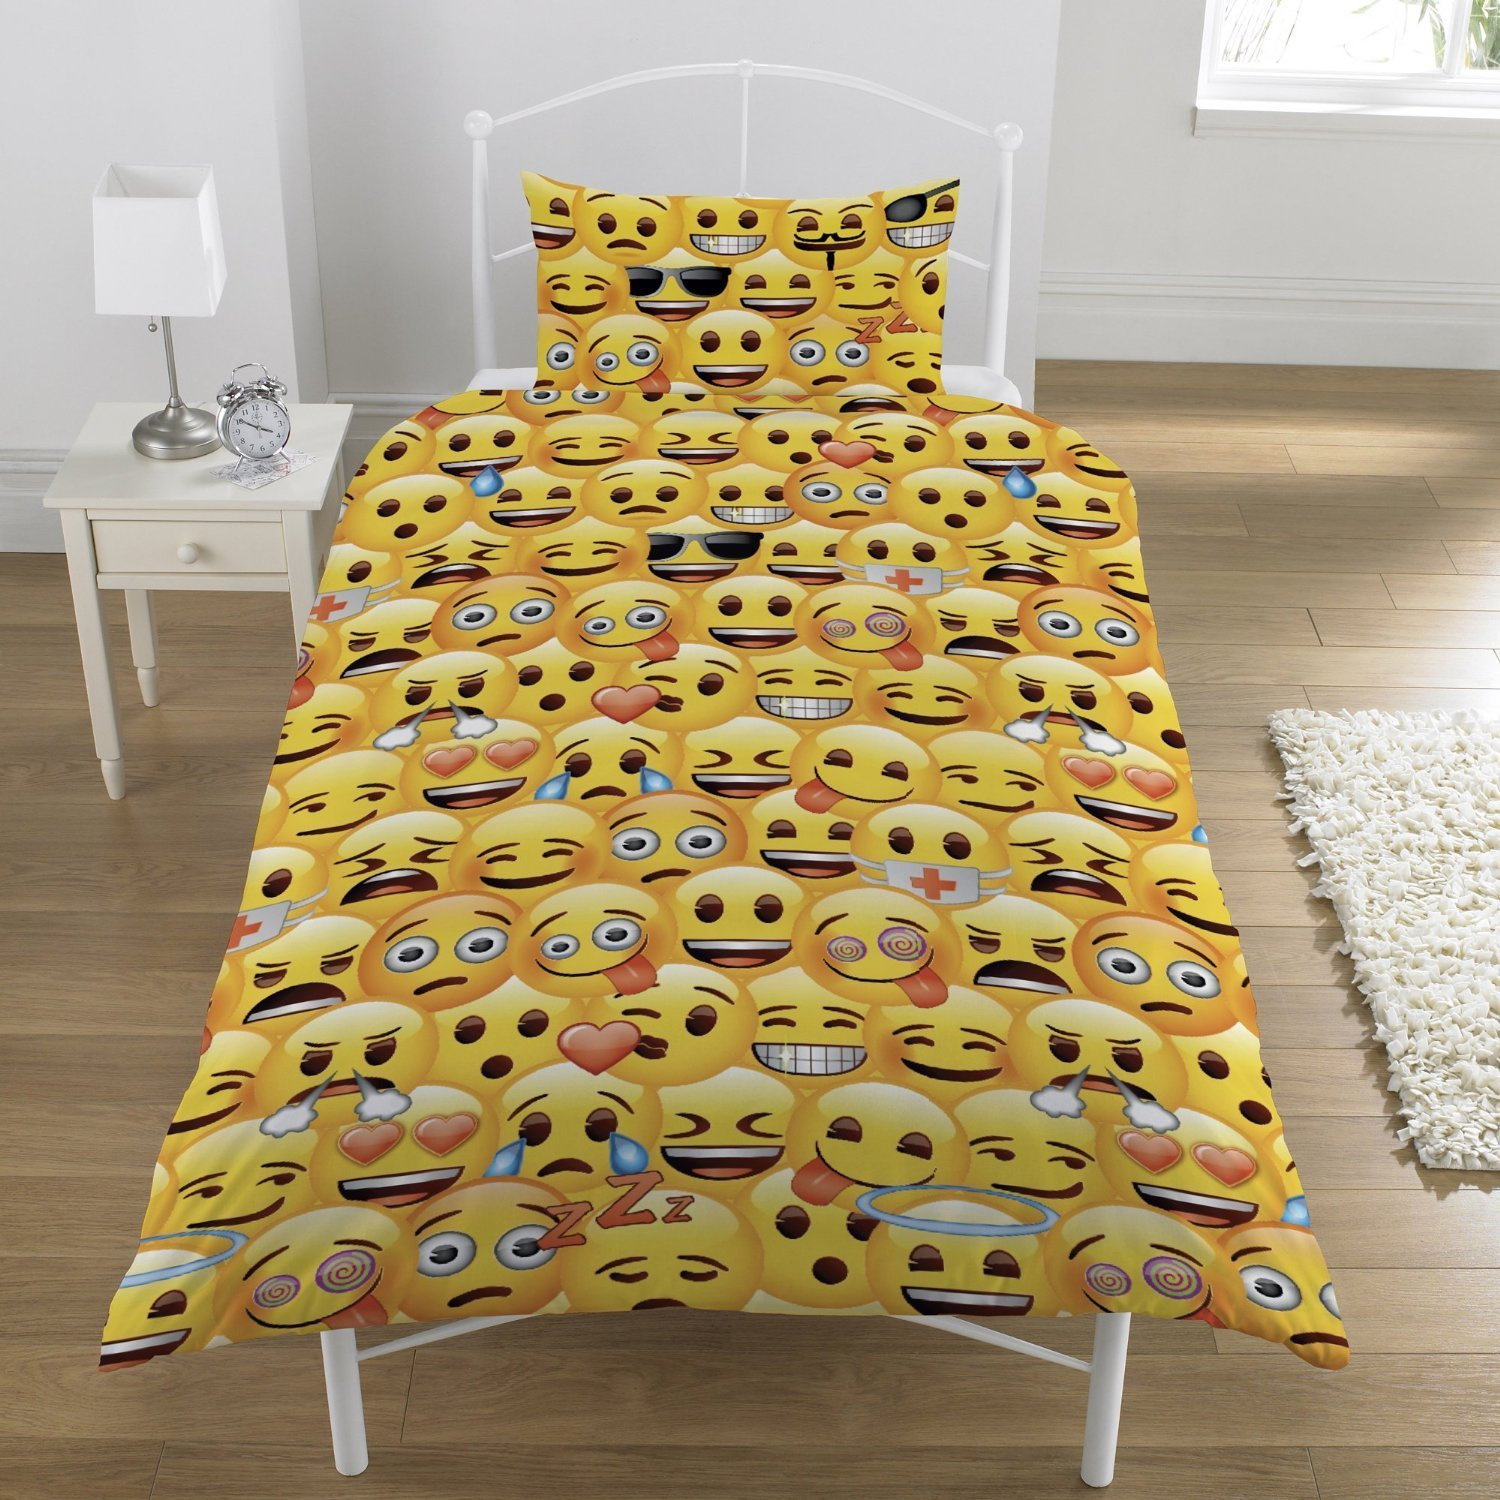 Emoji Single Duvet Quilt Cover Bedding Set Boys Girls Kids